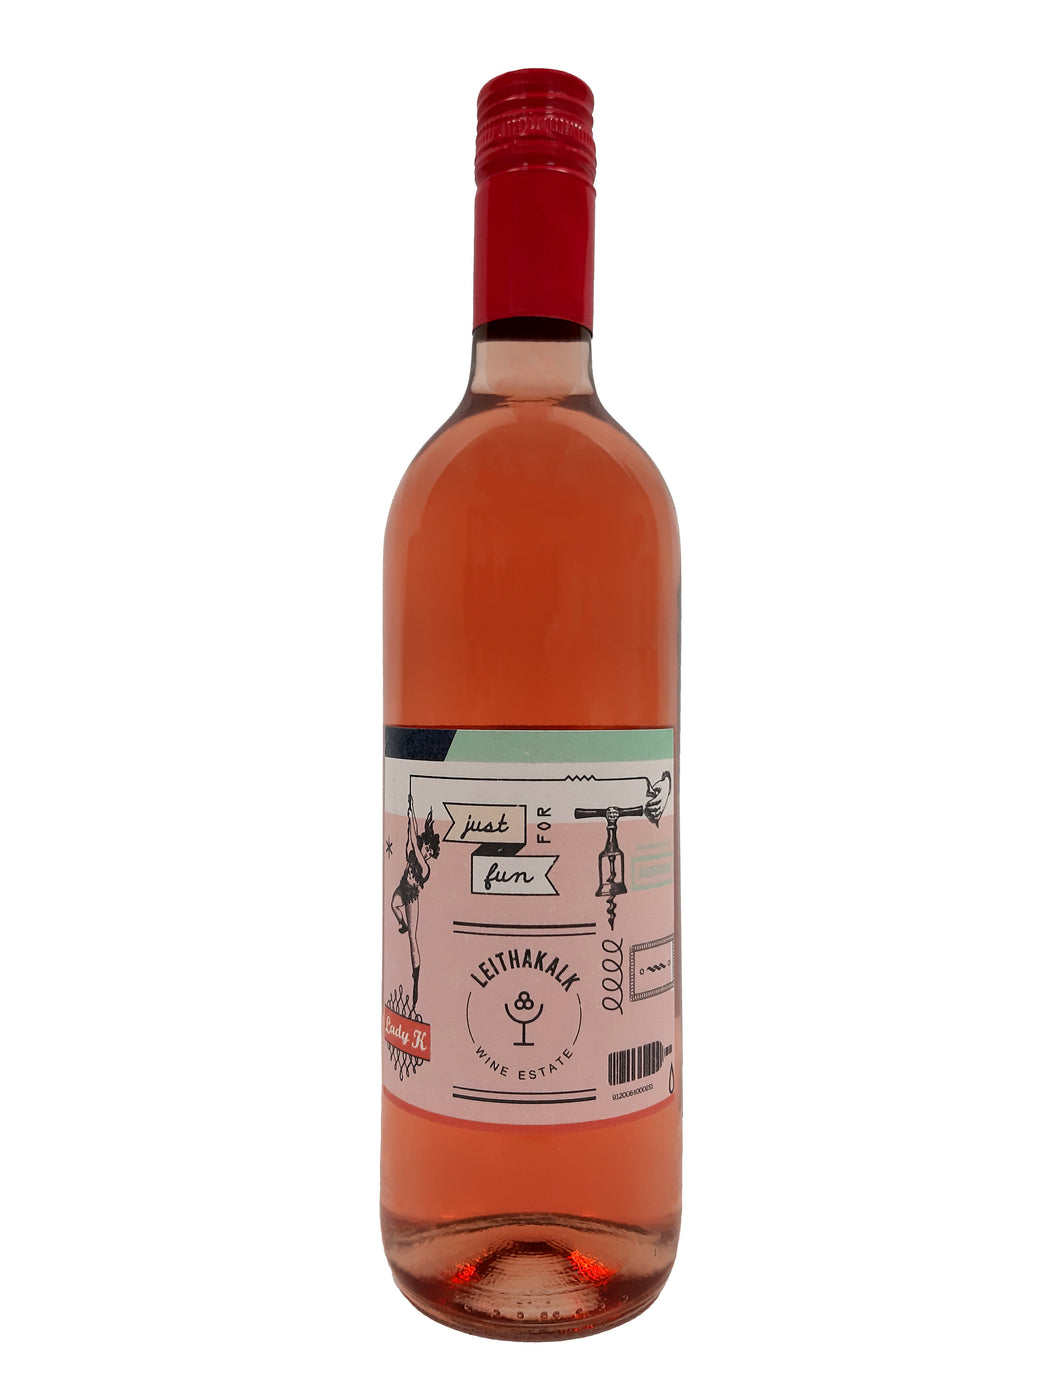 Leithakalk Wine Estate - Lady K Rosé 2018